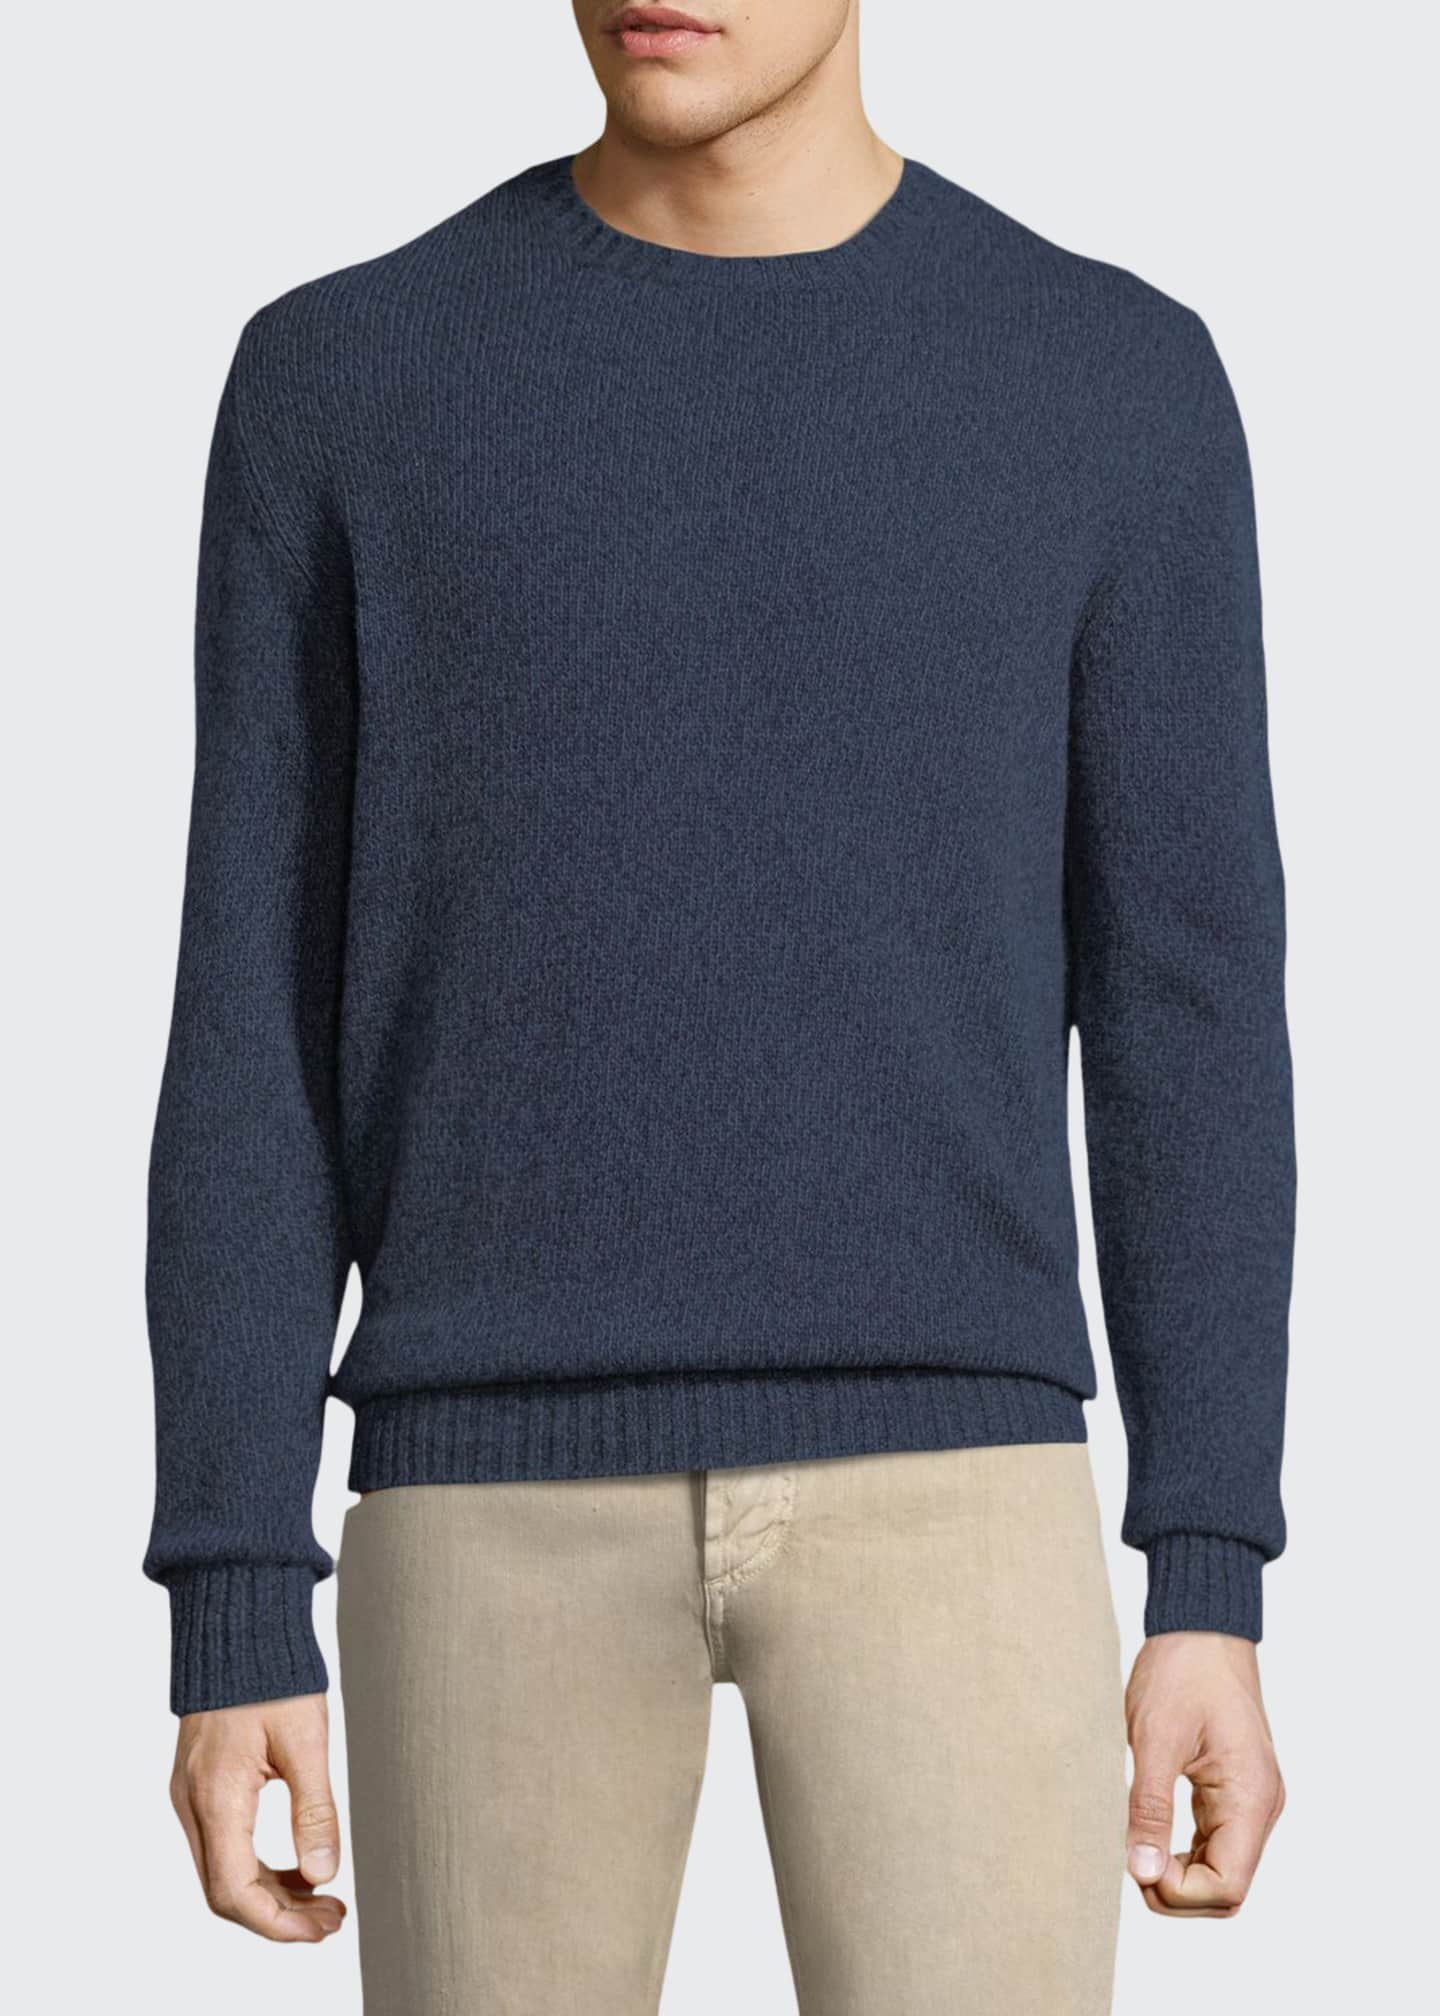 Image 1 of 2: Men's Light Baby Cashmere Crewneck Sweater